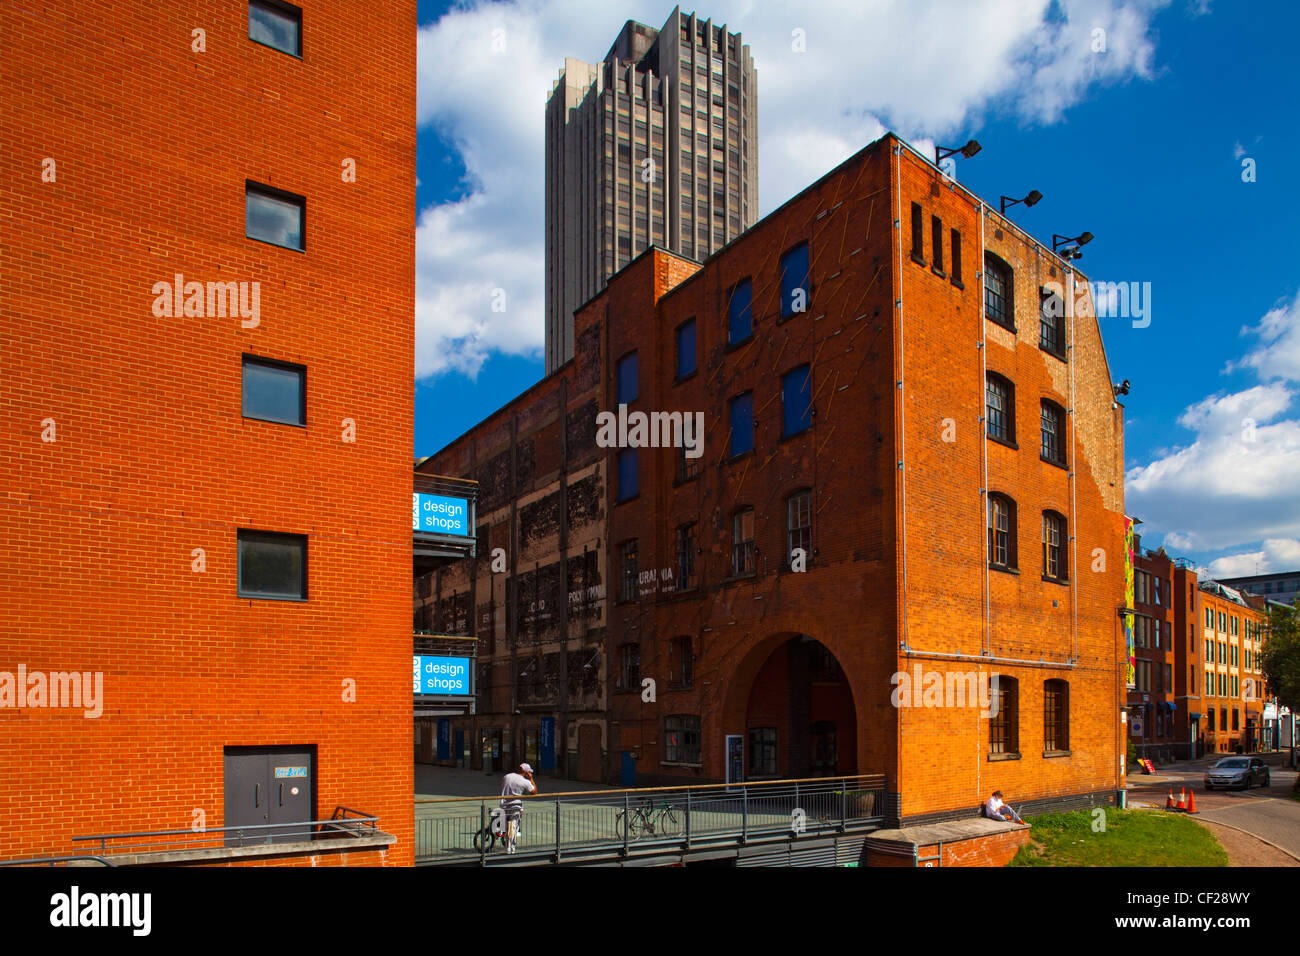 The OXO Tower complex with Sea Containers House beyond. - Stock Image